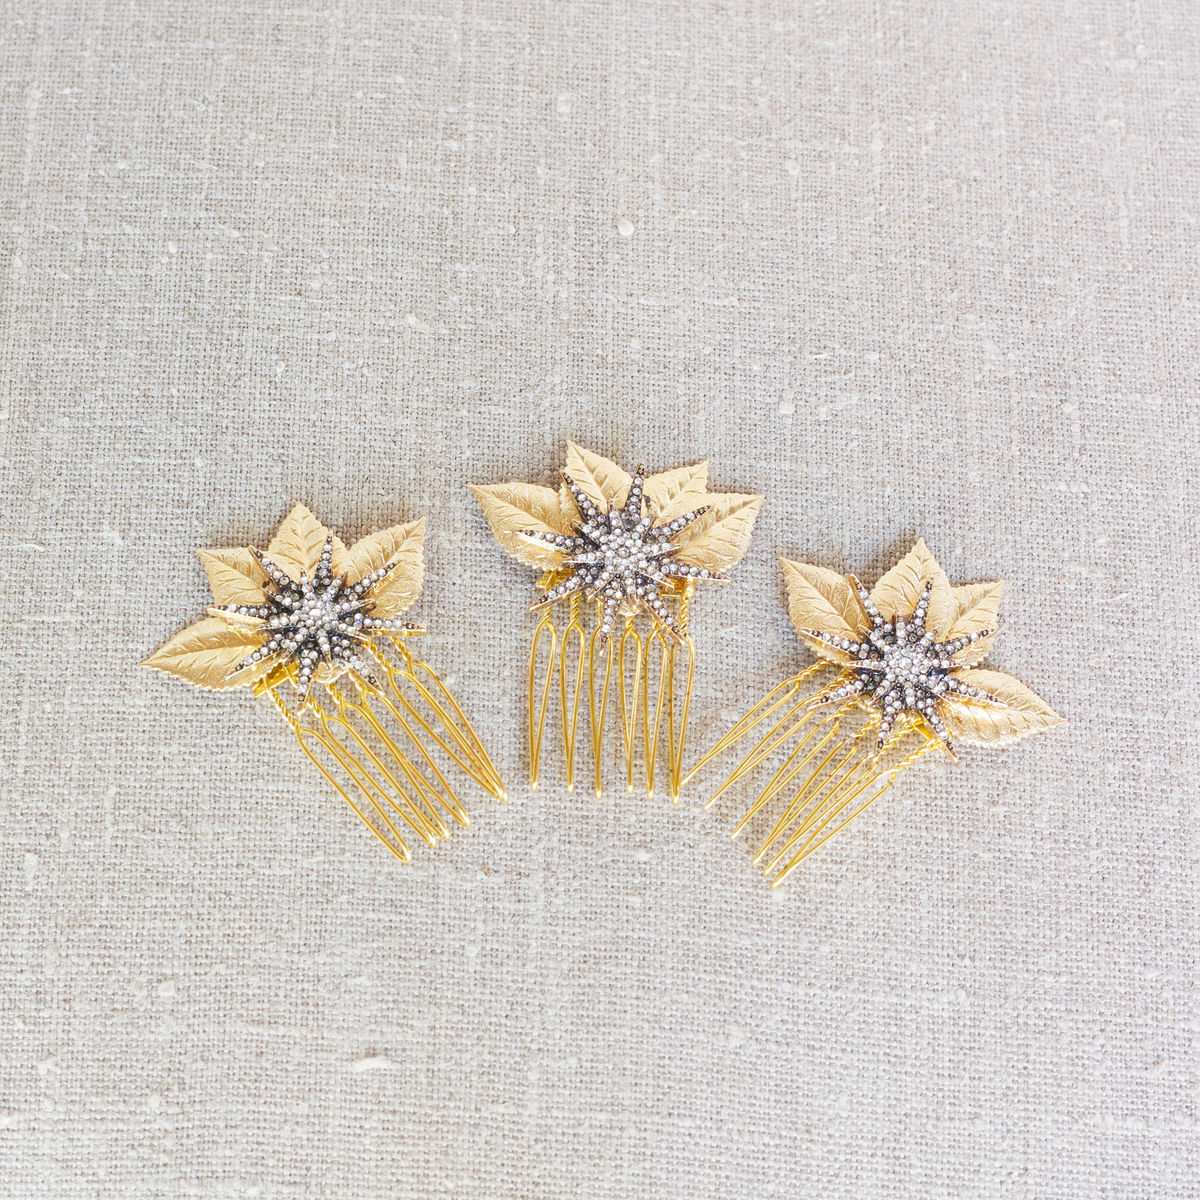 Alamany Combs - Set of 3 - product images  of